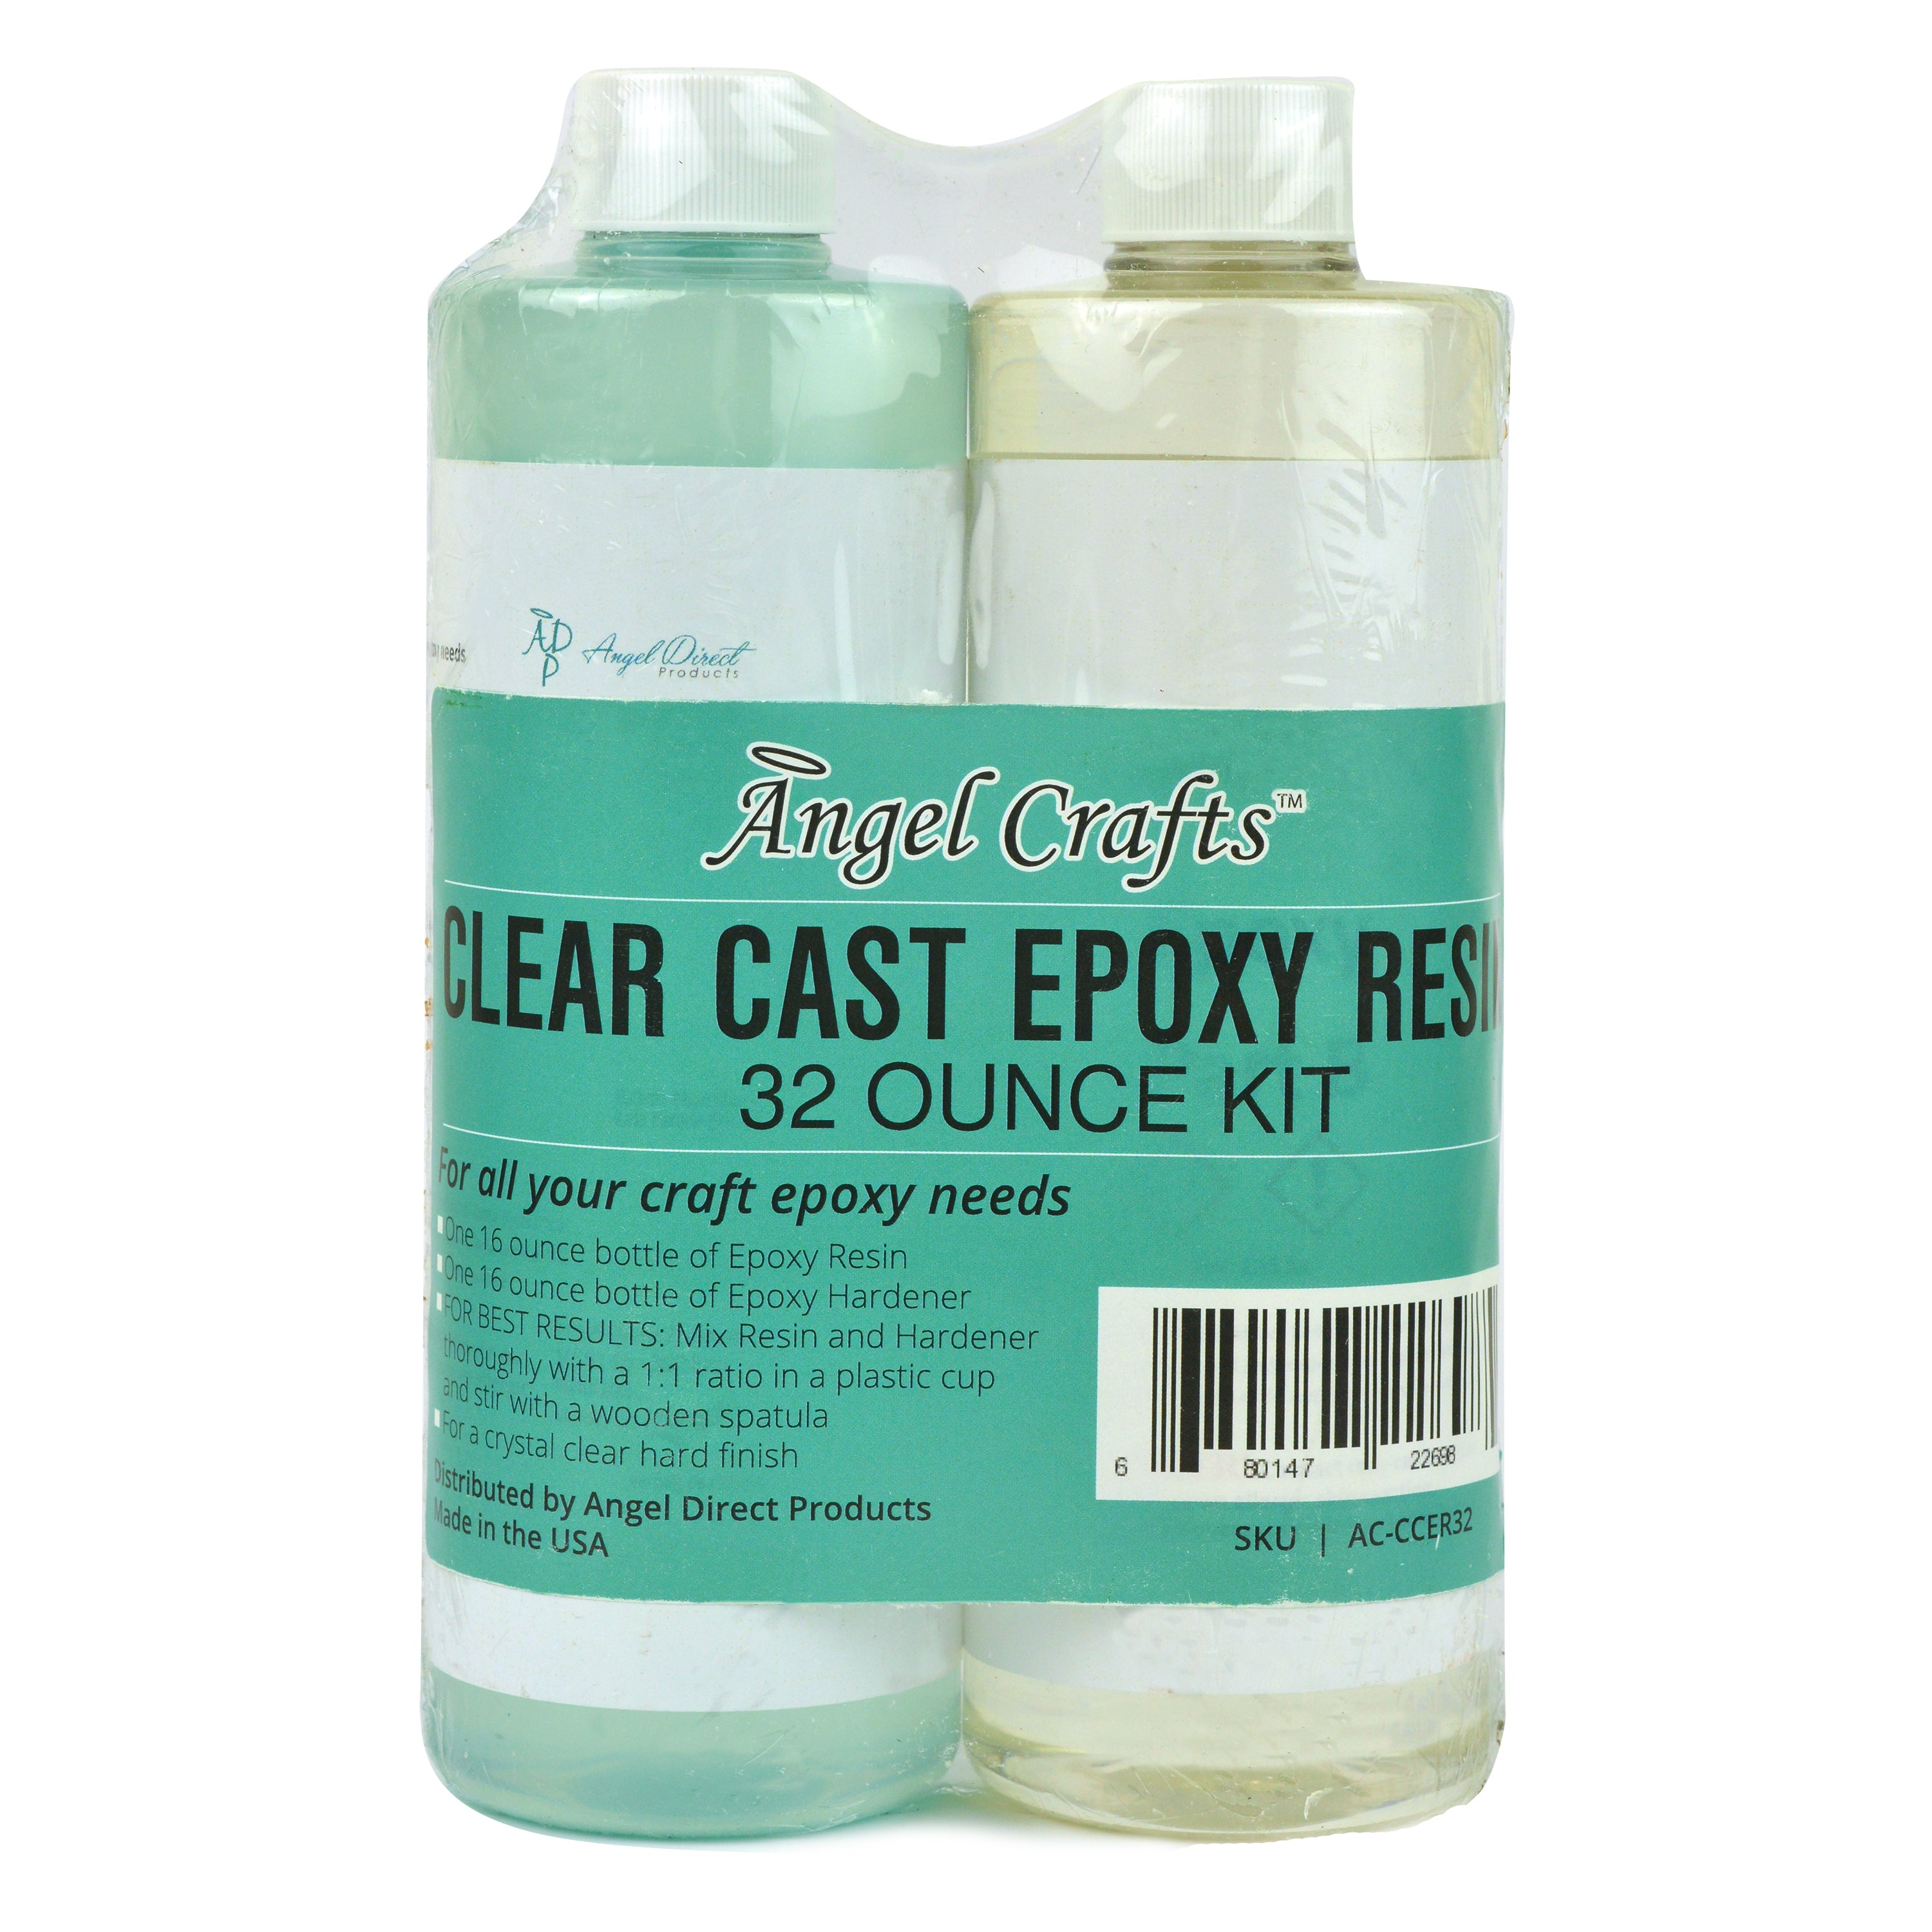 Angel Crafts Clear Casting EPOXY Resin & Hardener (32oz) Mix Kit